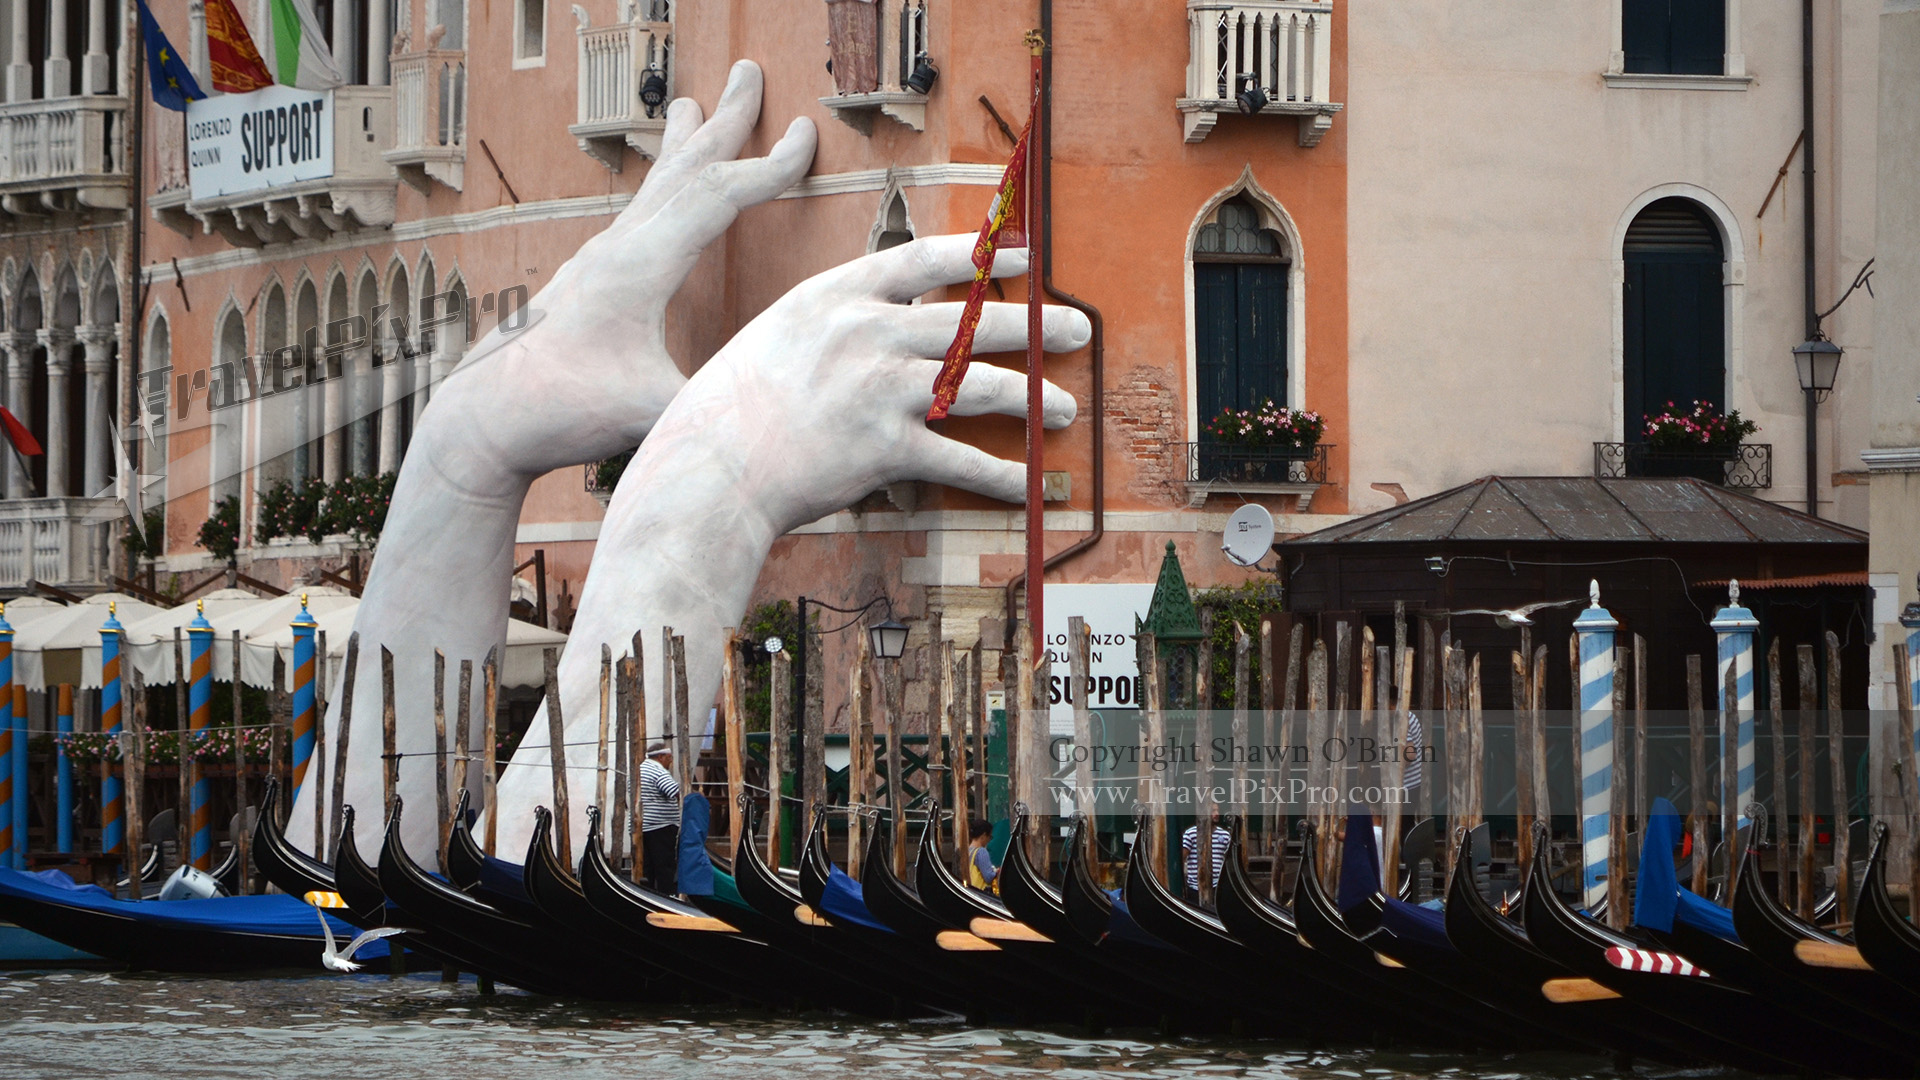 Helping Hands in Venice